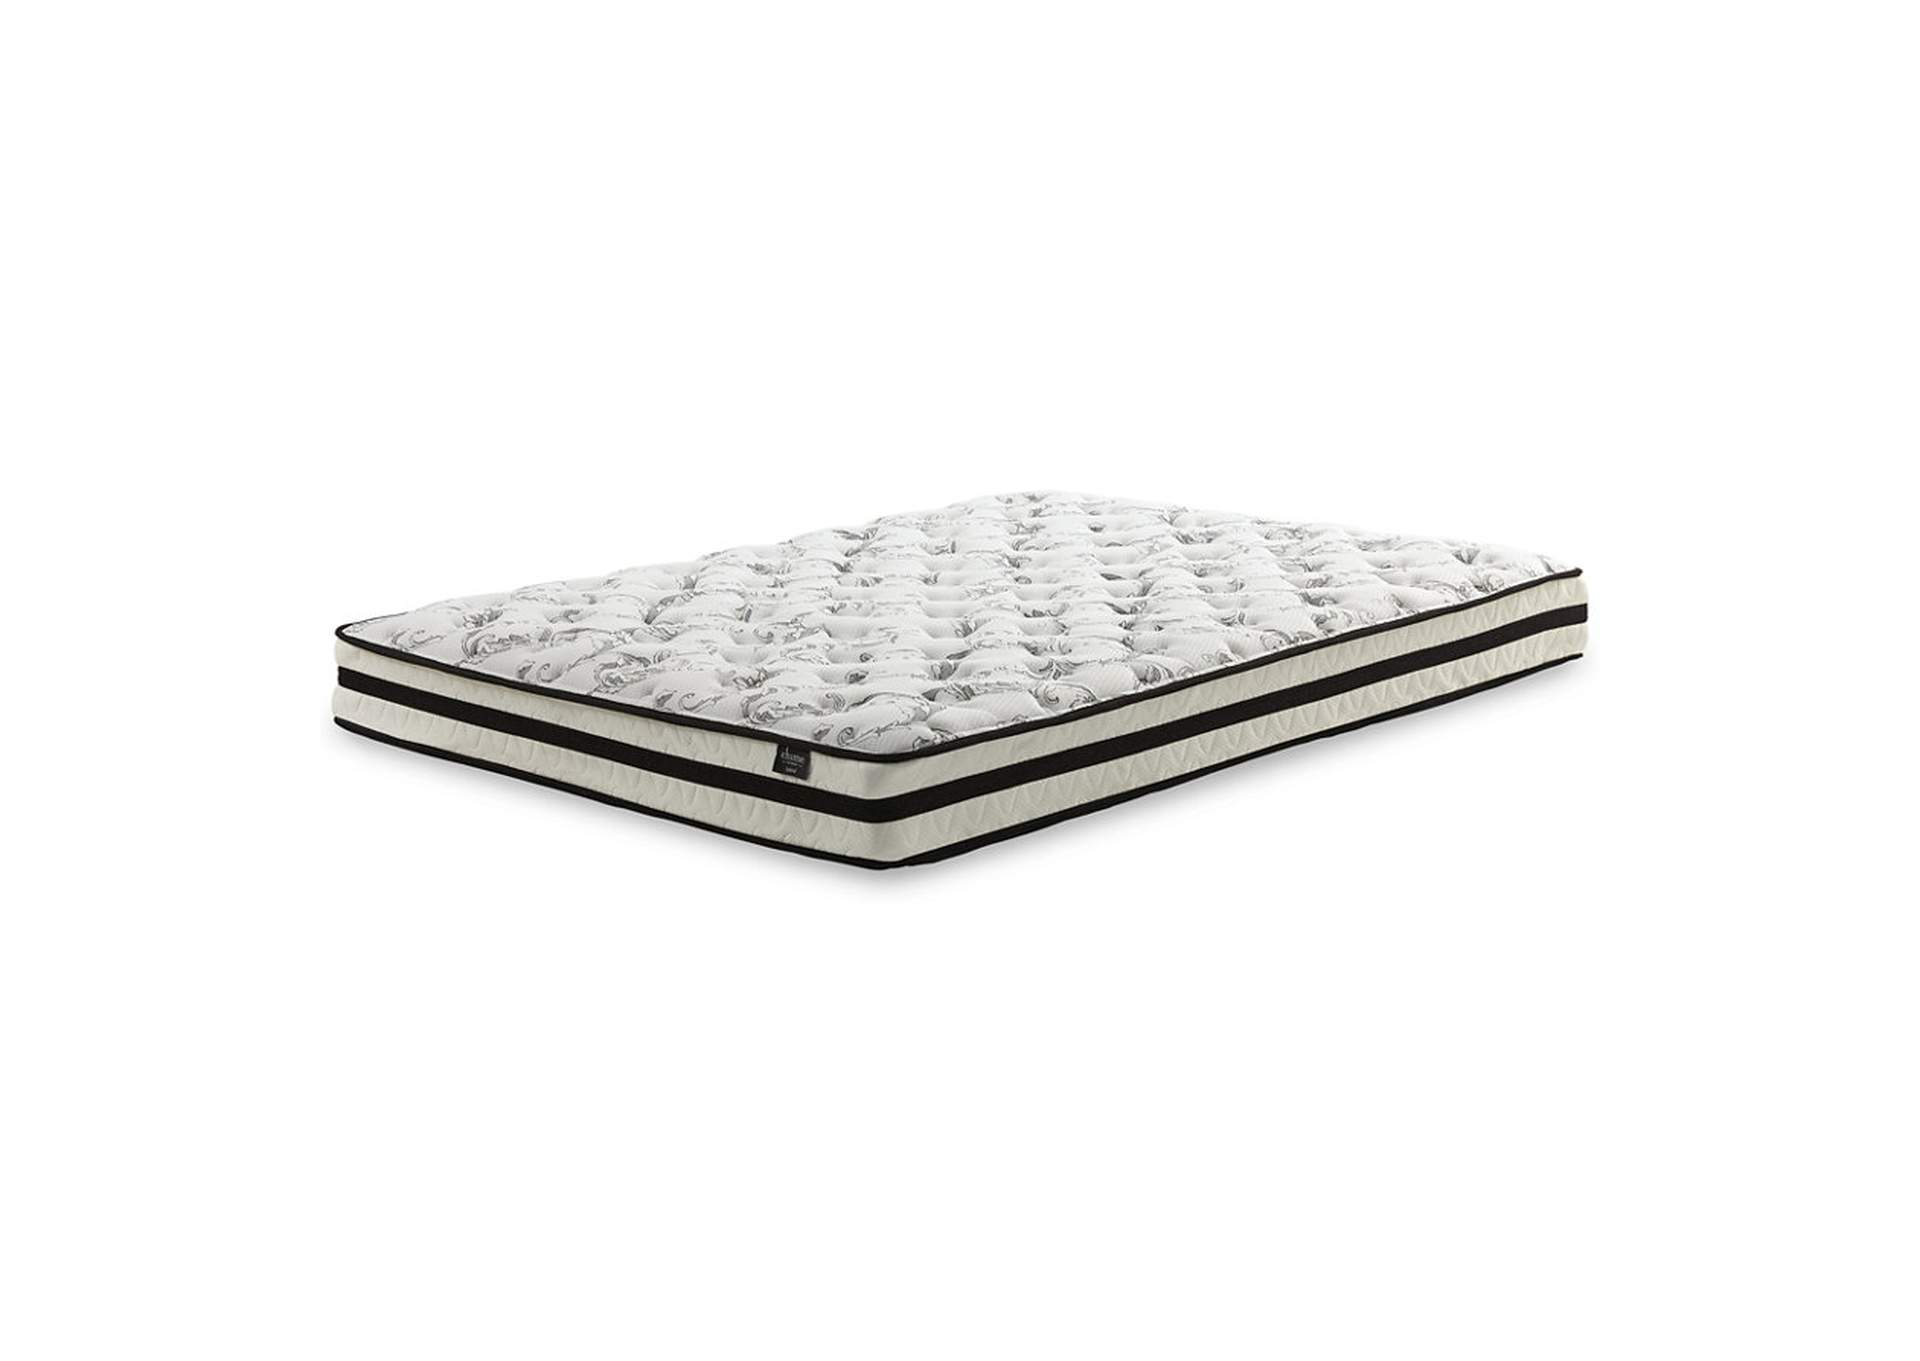 8 Inch Chime Innerspring Twin Mattress in a Box,Sierra Sleep by Ashley